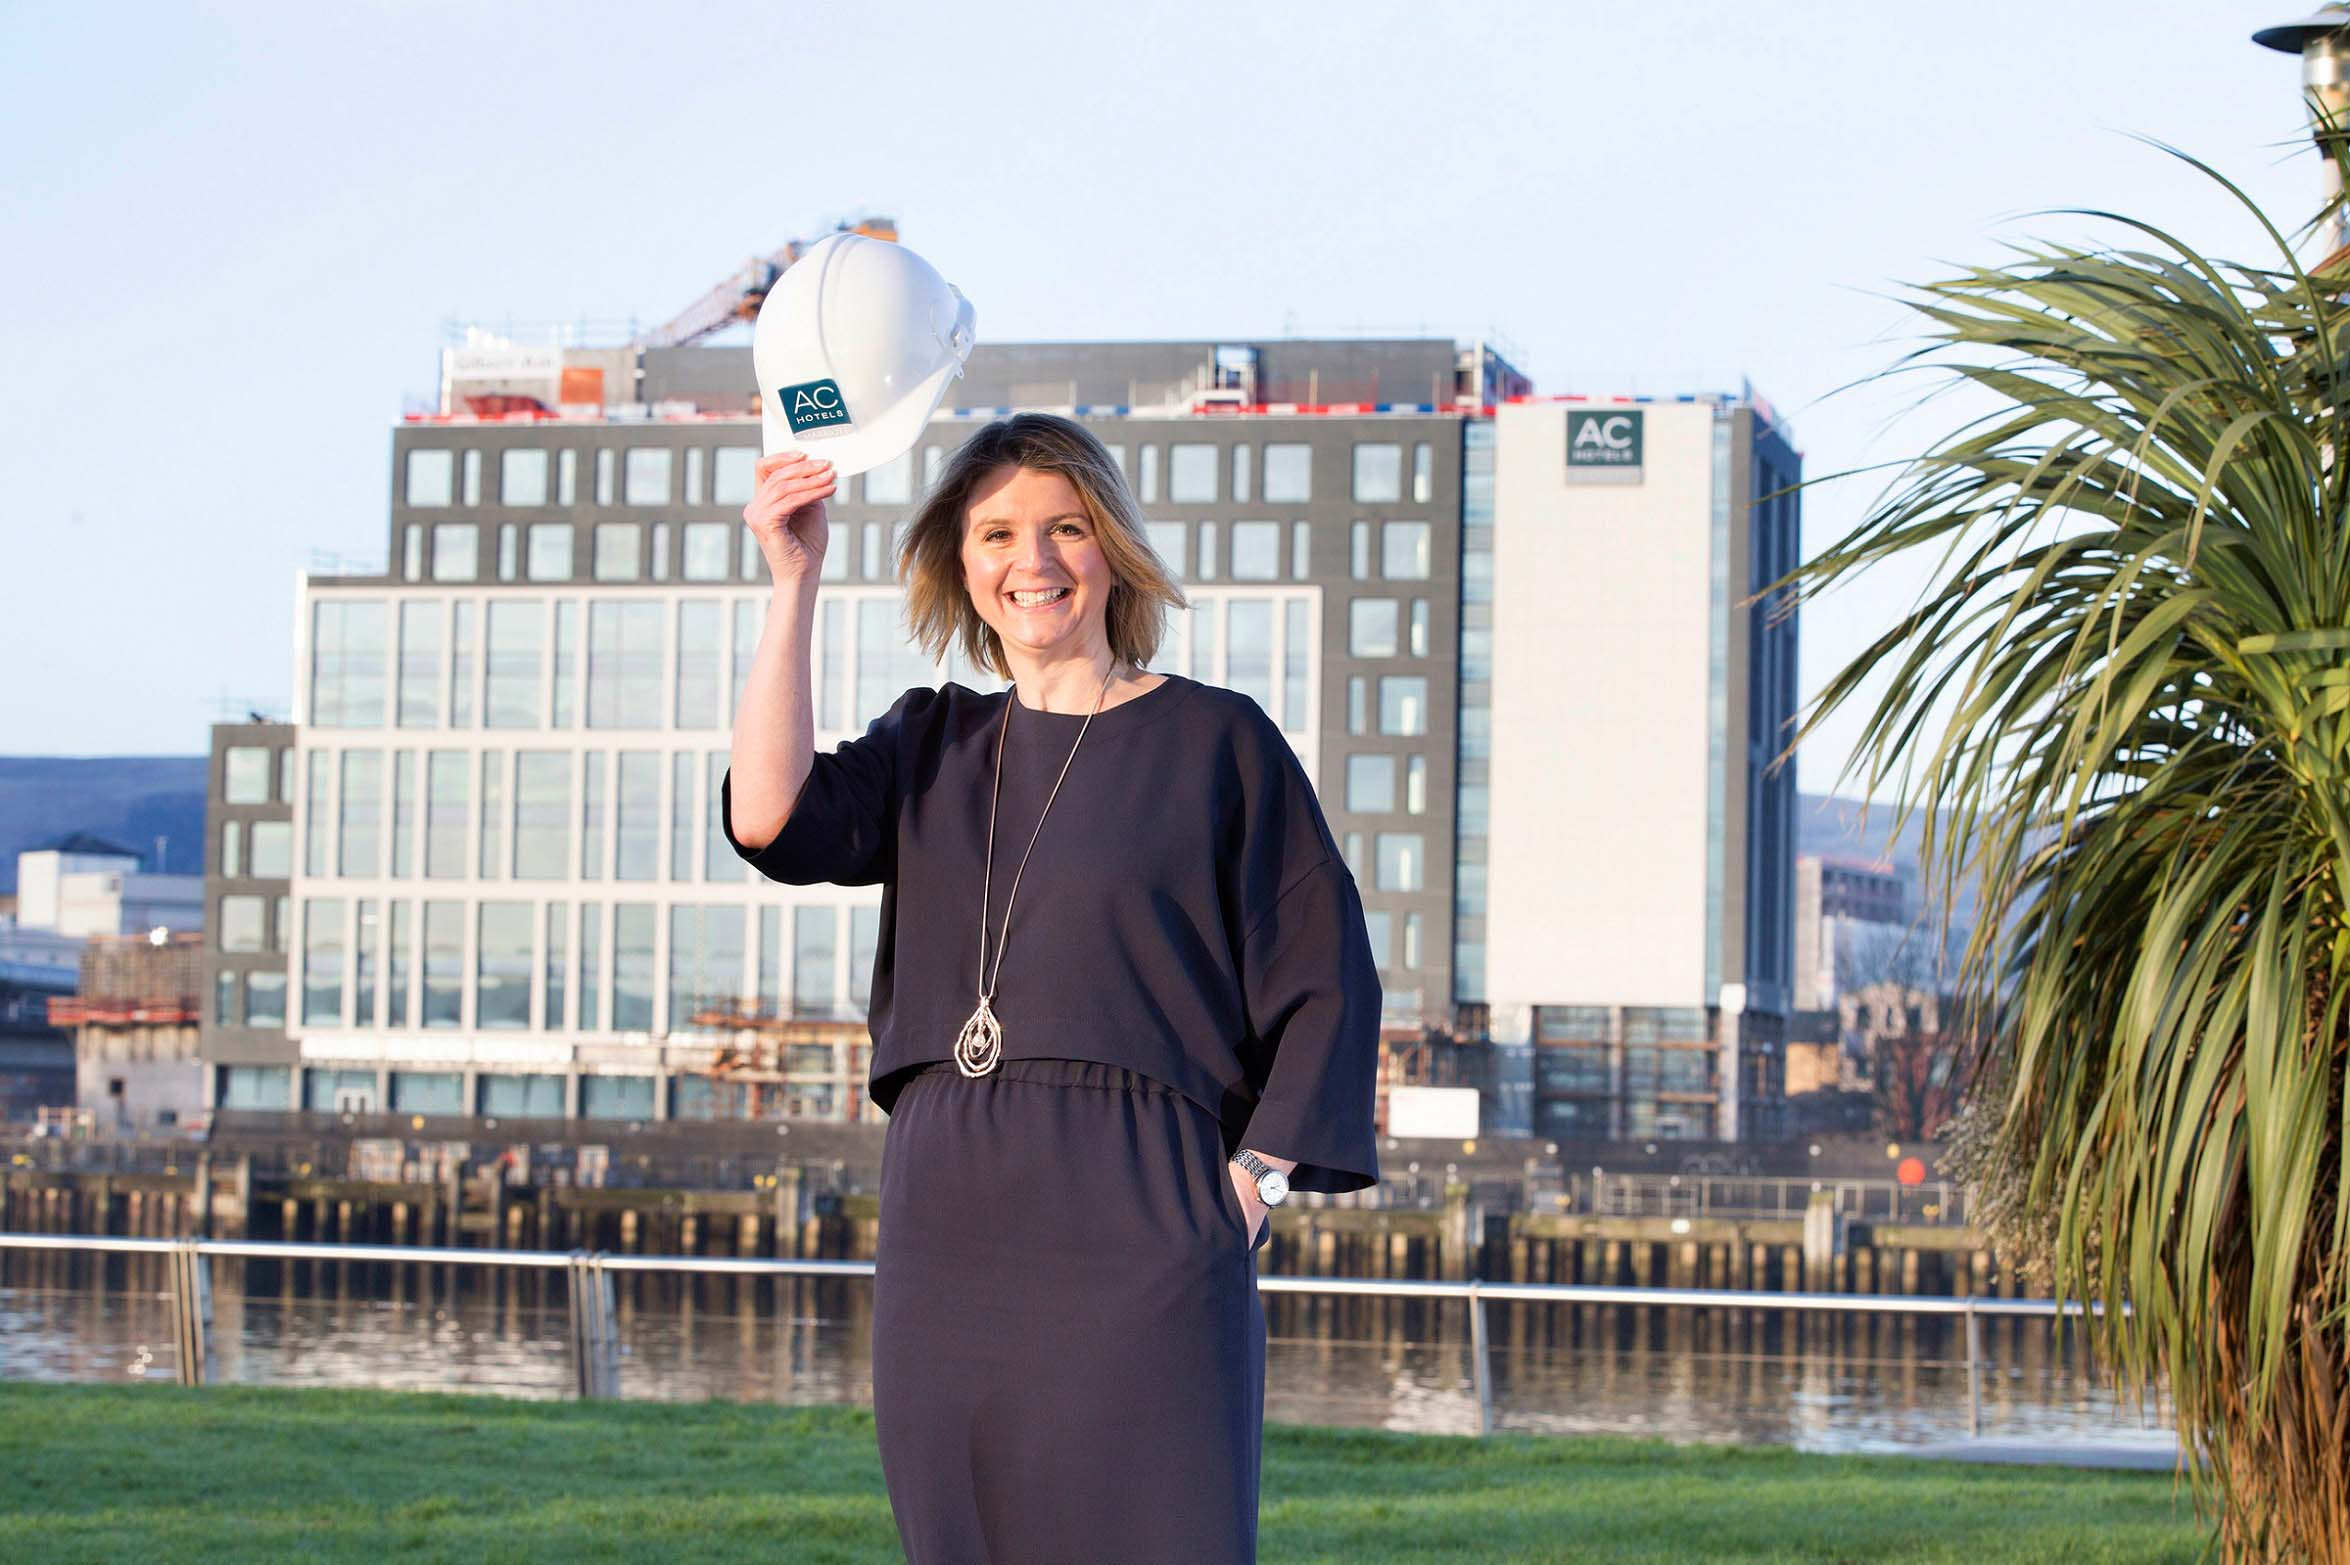 Global brand AC Hotels by Marriott confirms opening date for first hotel in Ireland